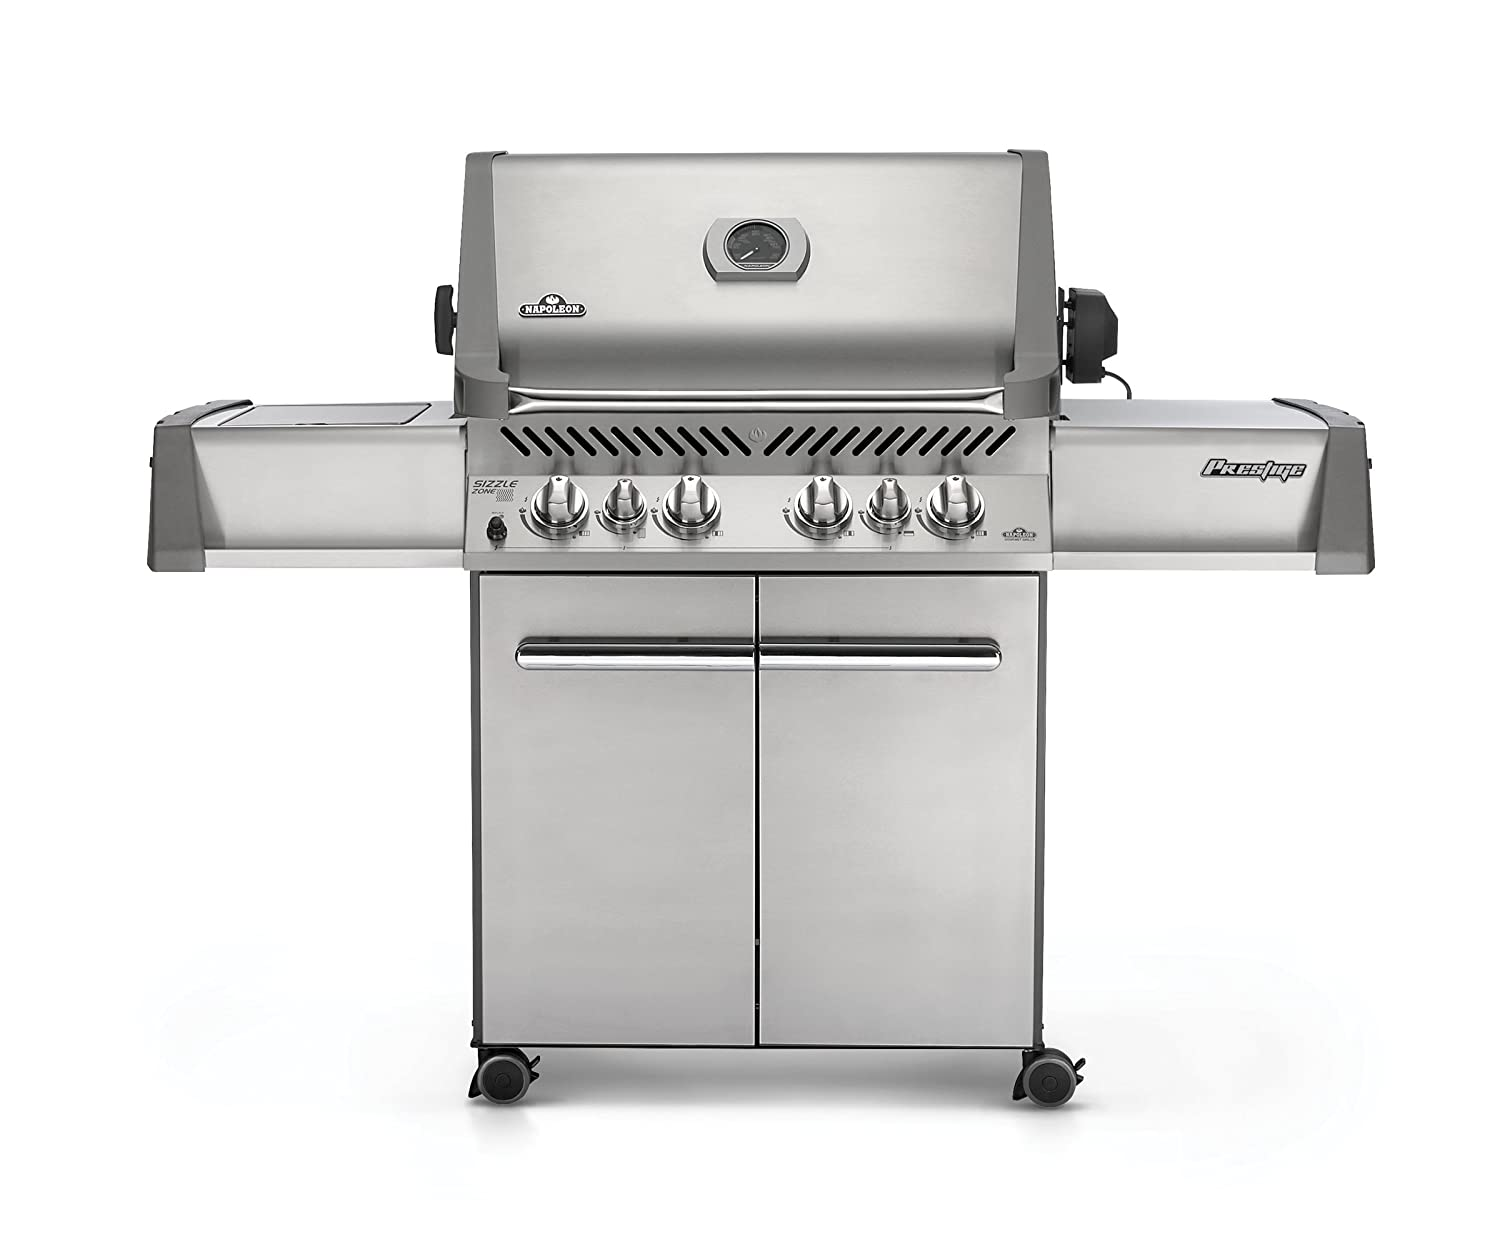 amazon com napoleon p500rsibpss prestige propane grill with rear